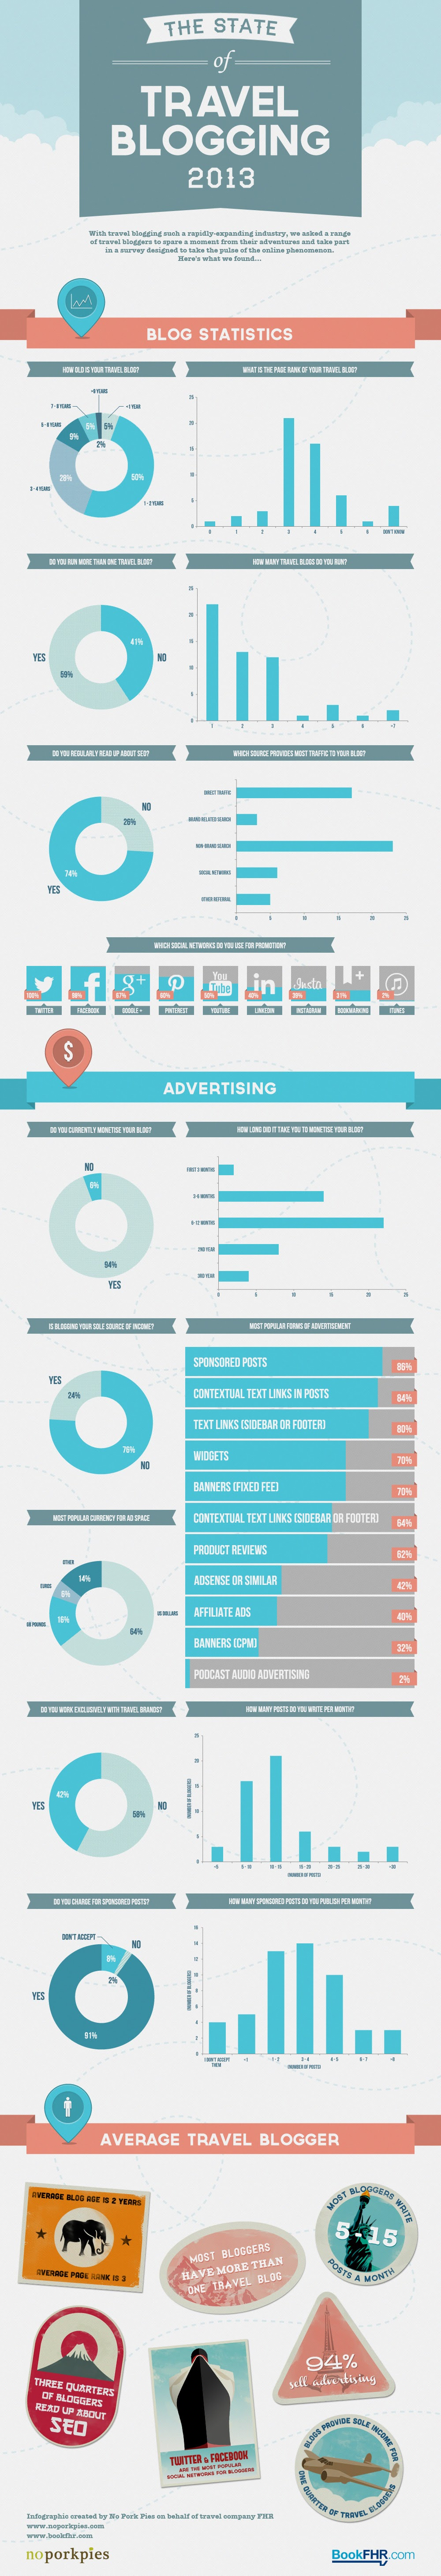 The Travel Blogging State 2013  #infographic